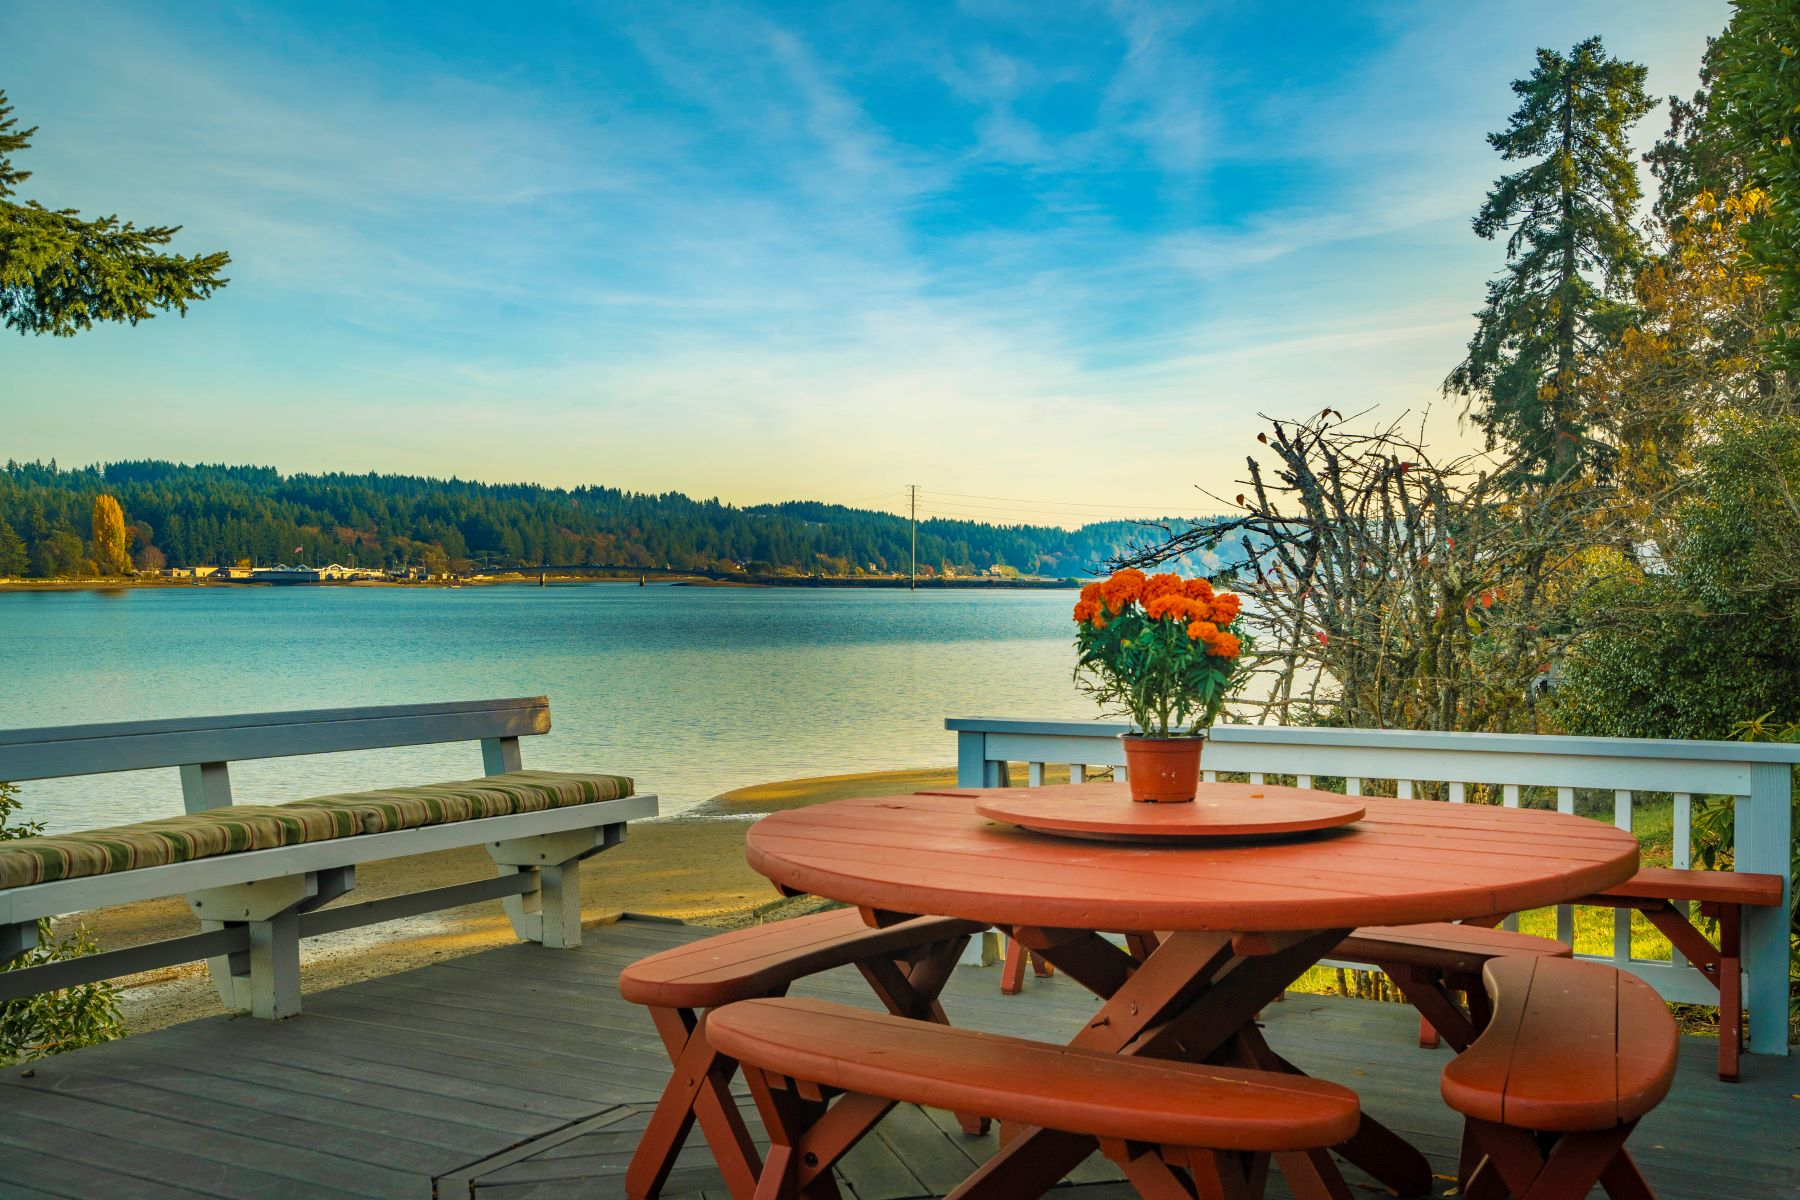 Single Family Homes for Sale at Waterfront Retreat Home 14703 Goodrich Drive NW, Gig Harbor, Washington 98329 United States